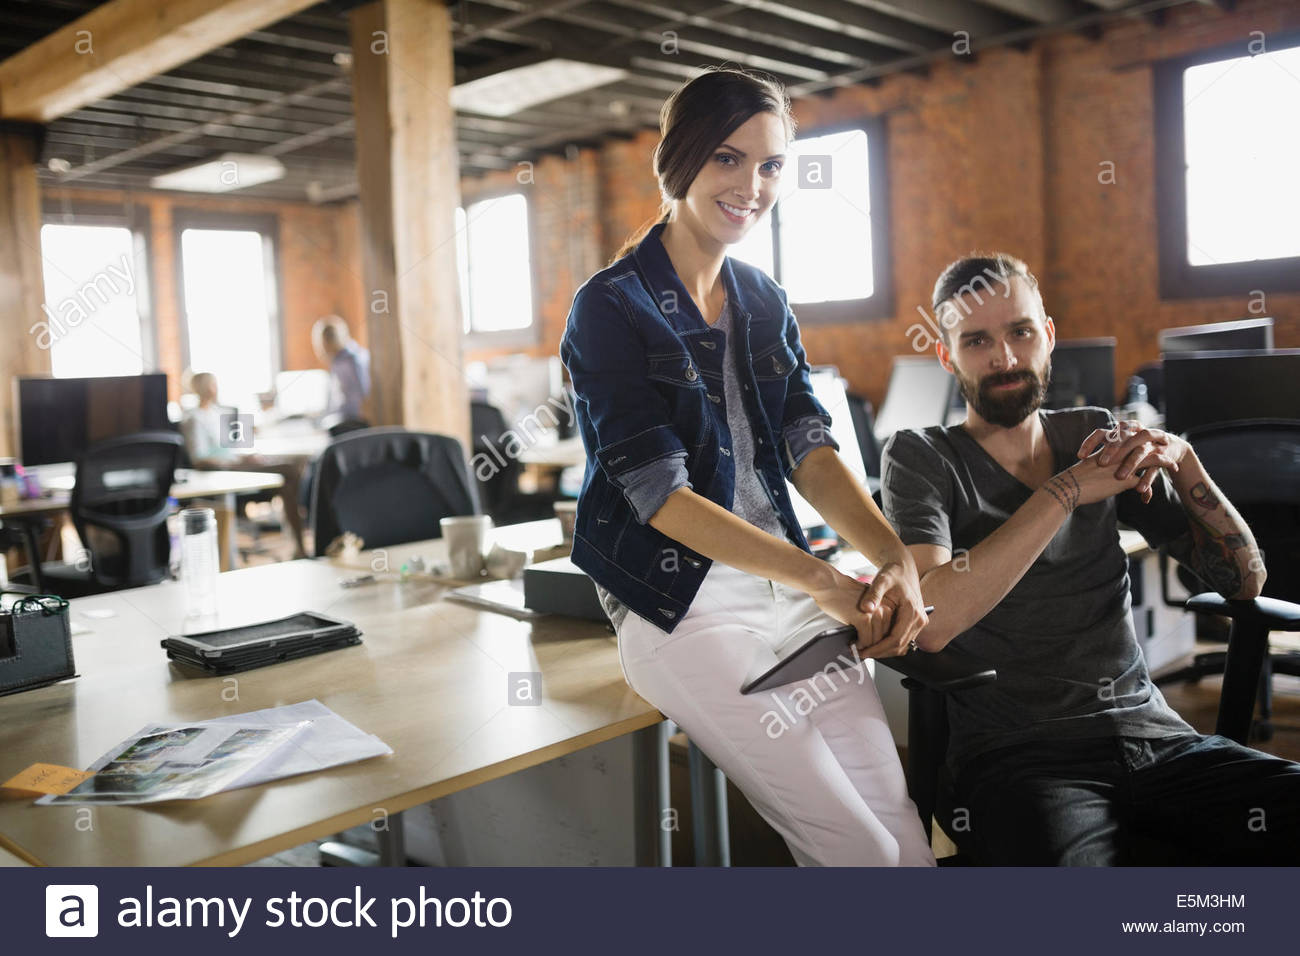 Portrait of business people in office Photo Stock